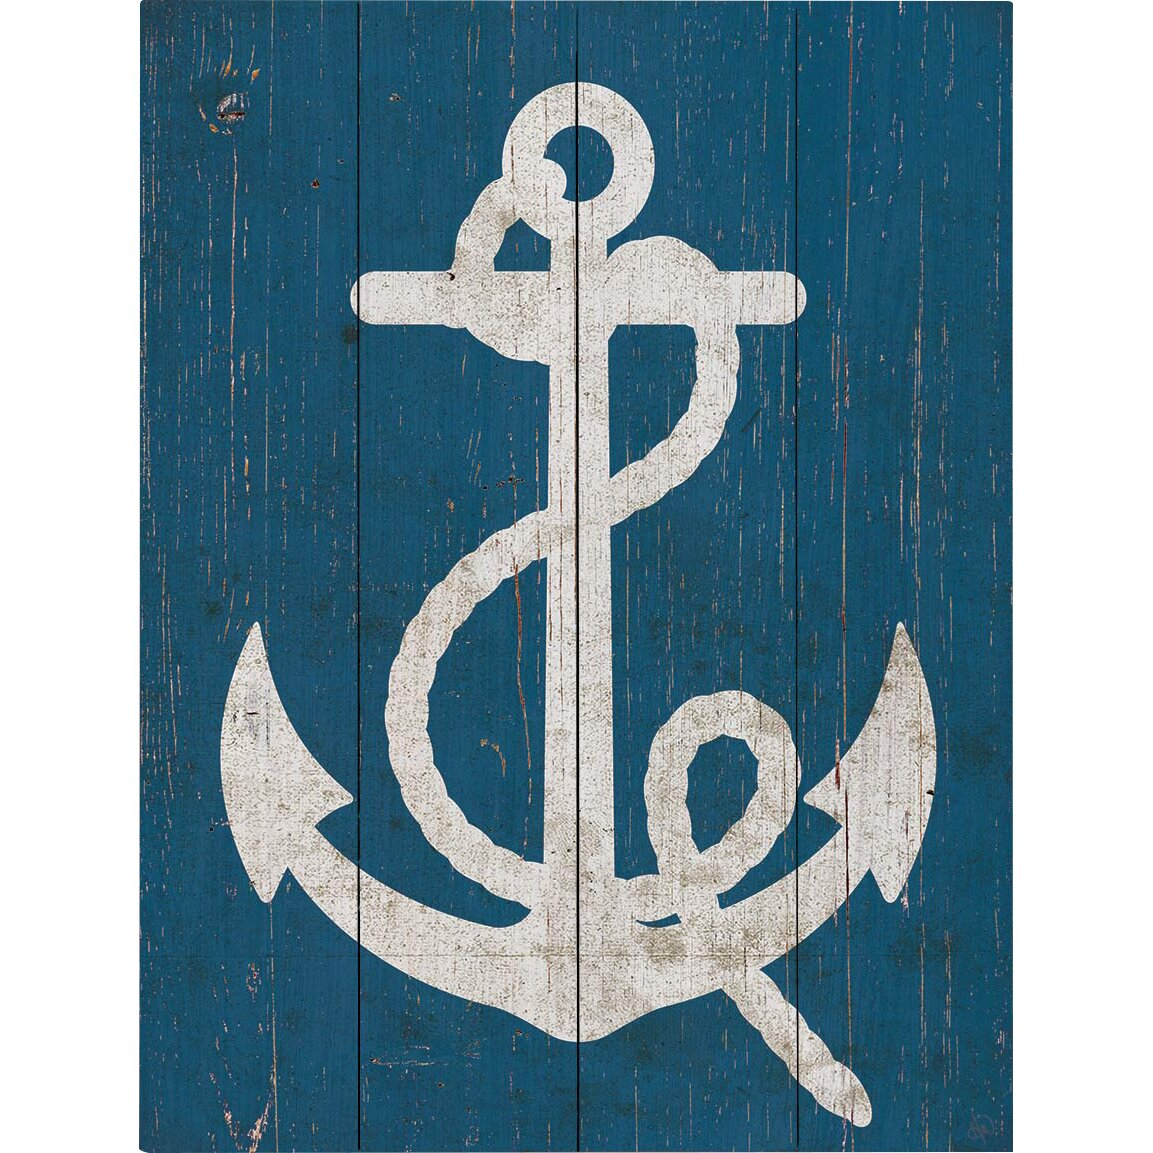 Vintage Anchor Wall Decor : Click wall art vintage anchor graphic plaque reviews